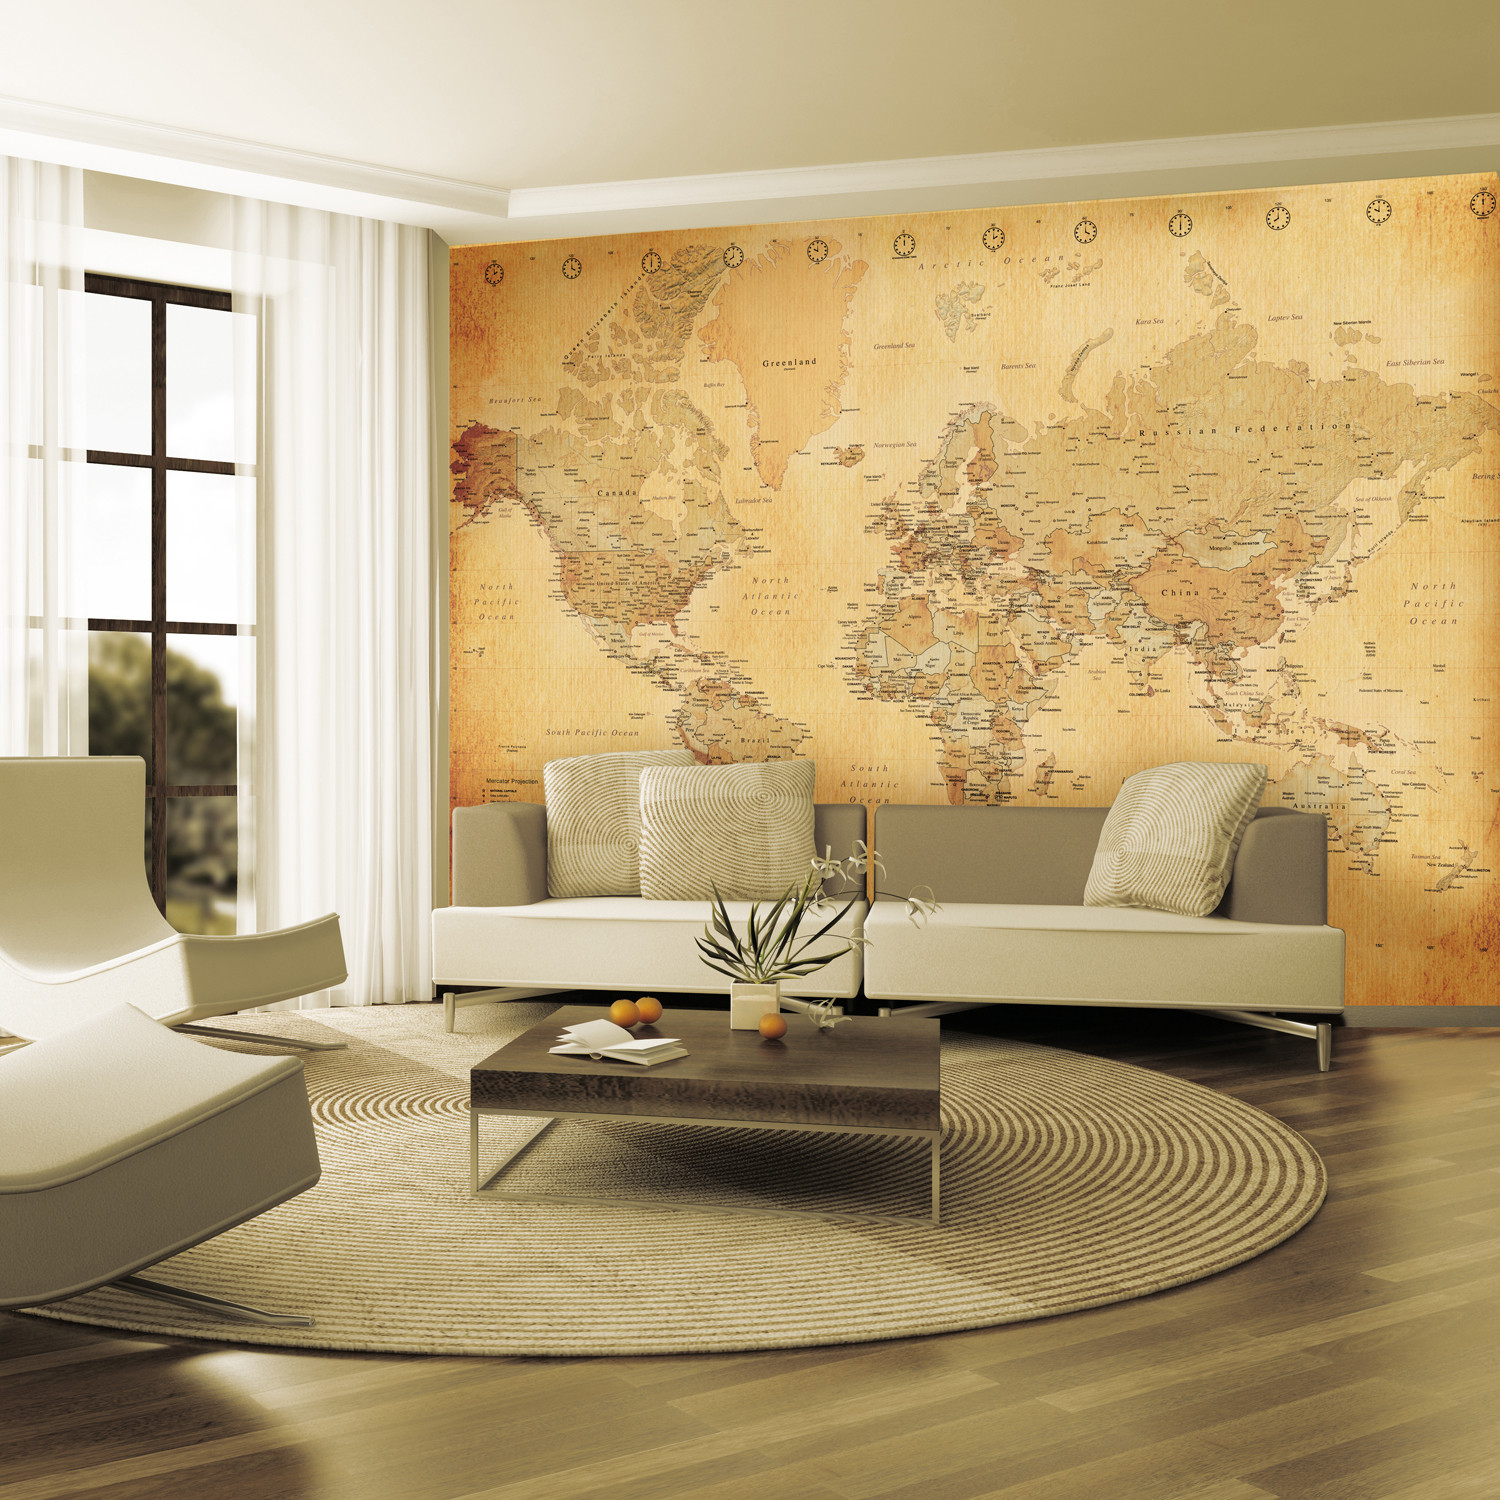 Vintage world map 1 wall murals touch of modern vintage world map gumiabroncs